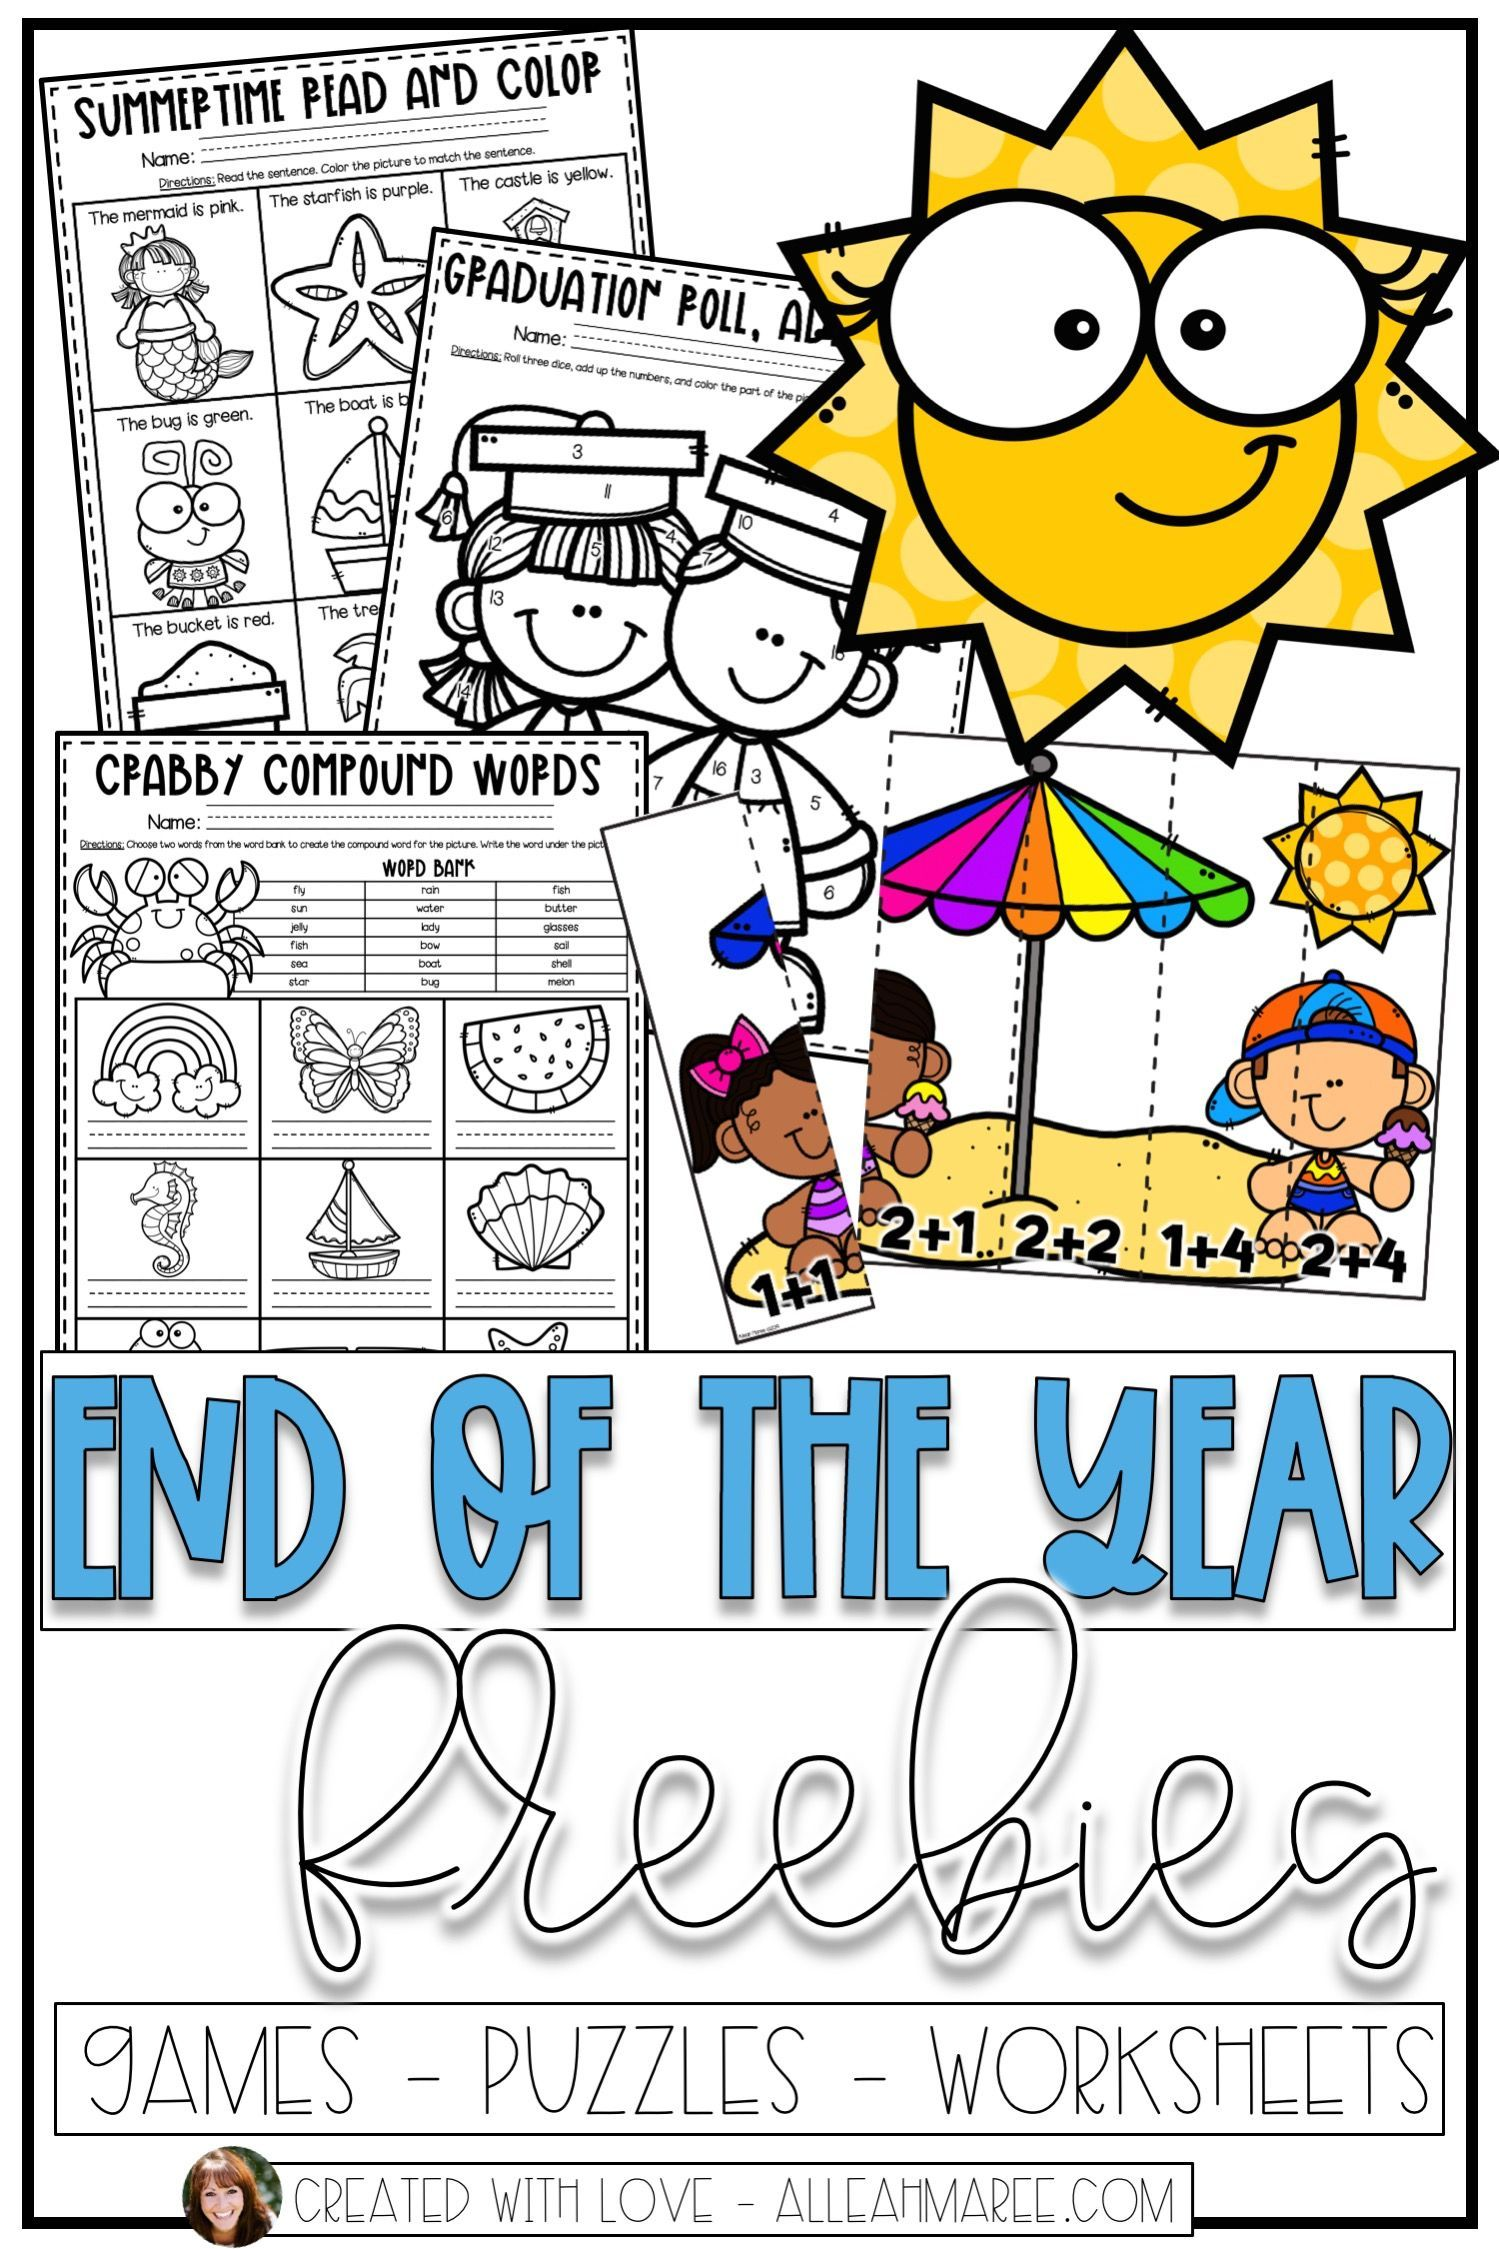 End Of The Year Freebies Puzzles Games And Worksheets